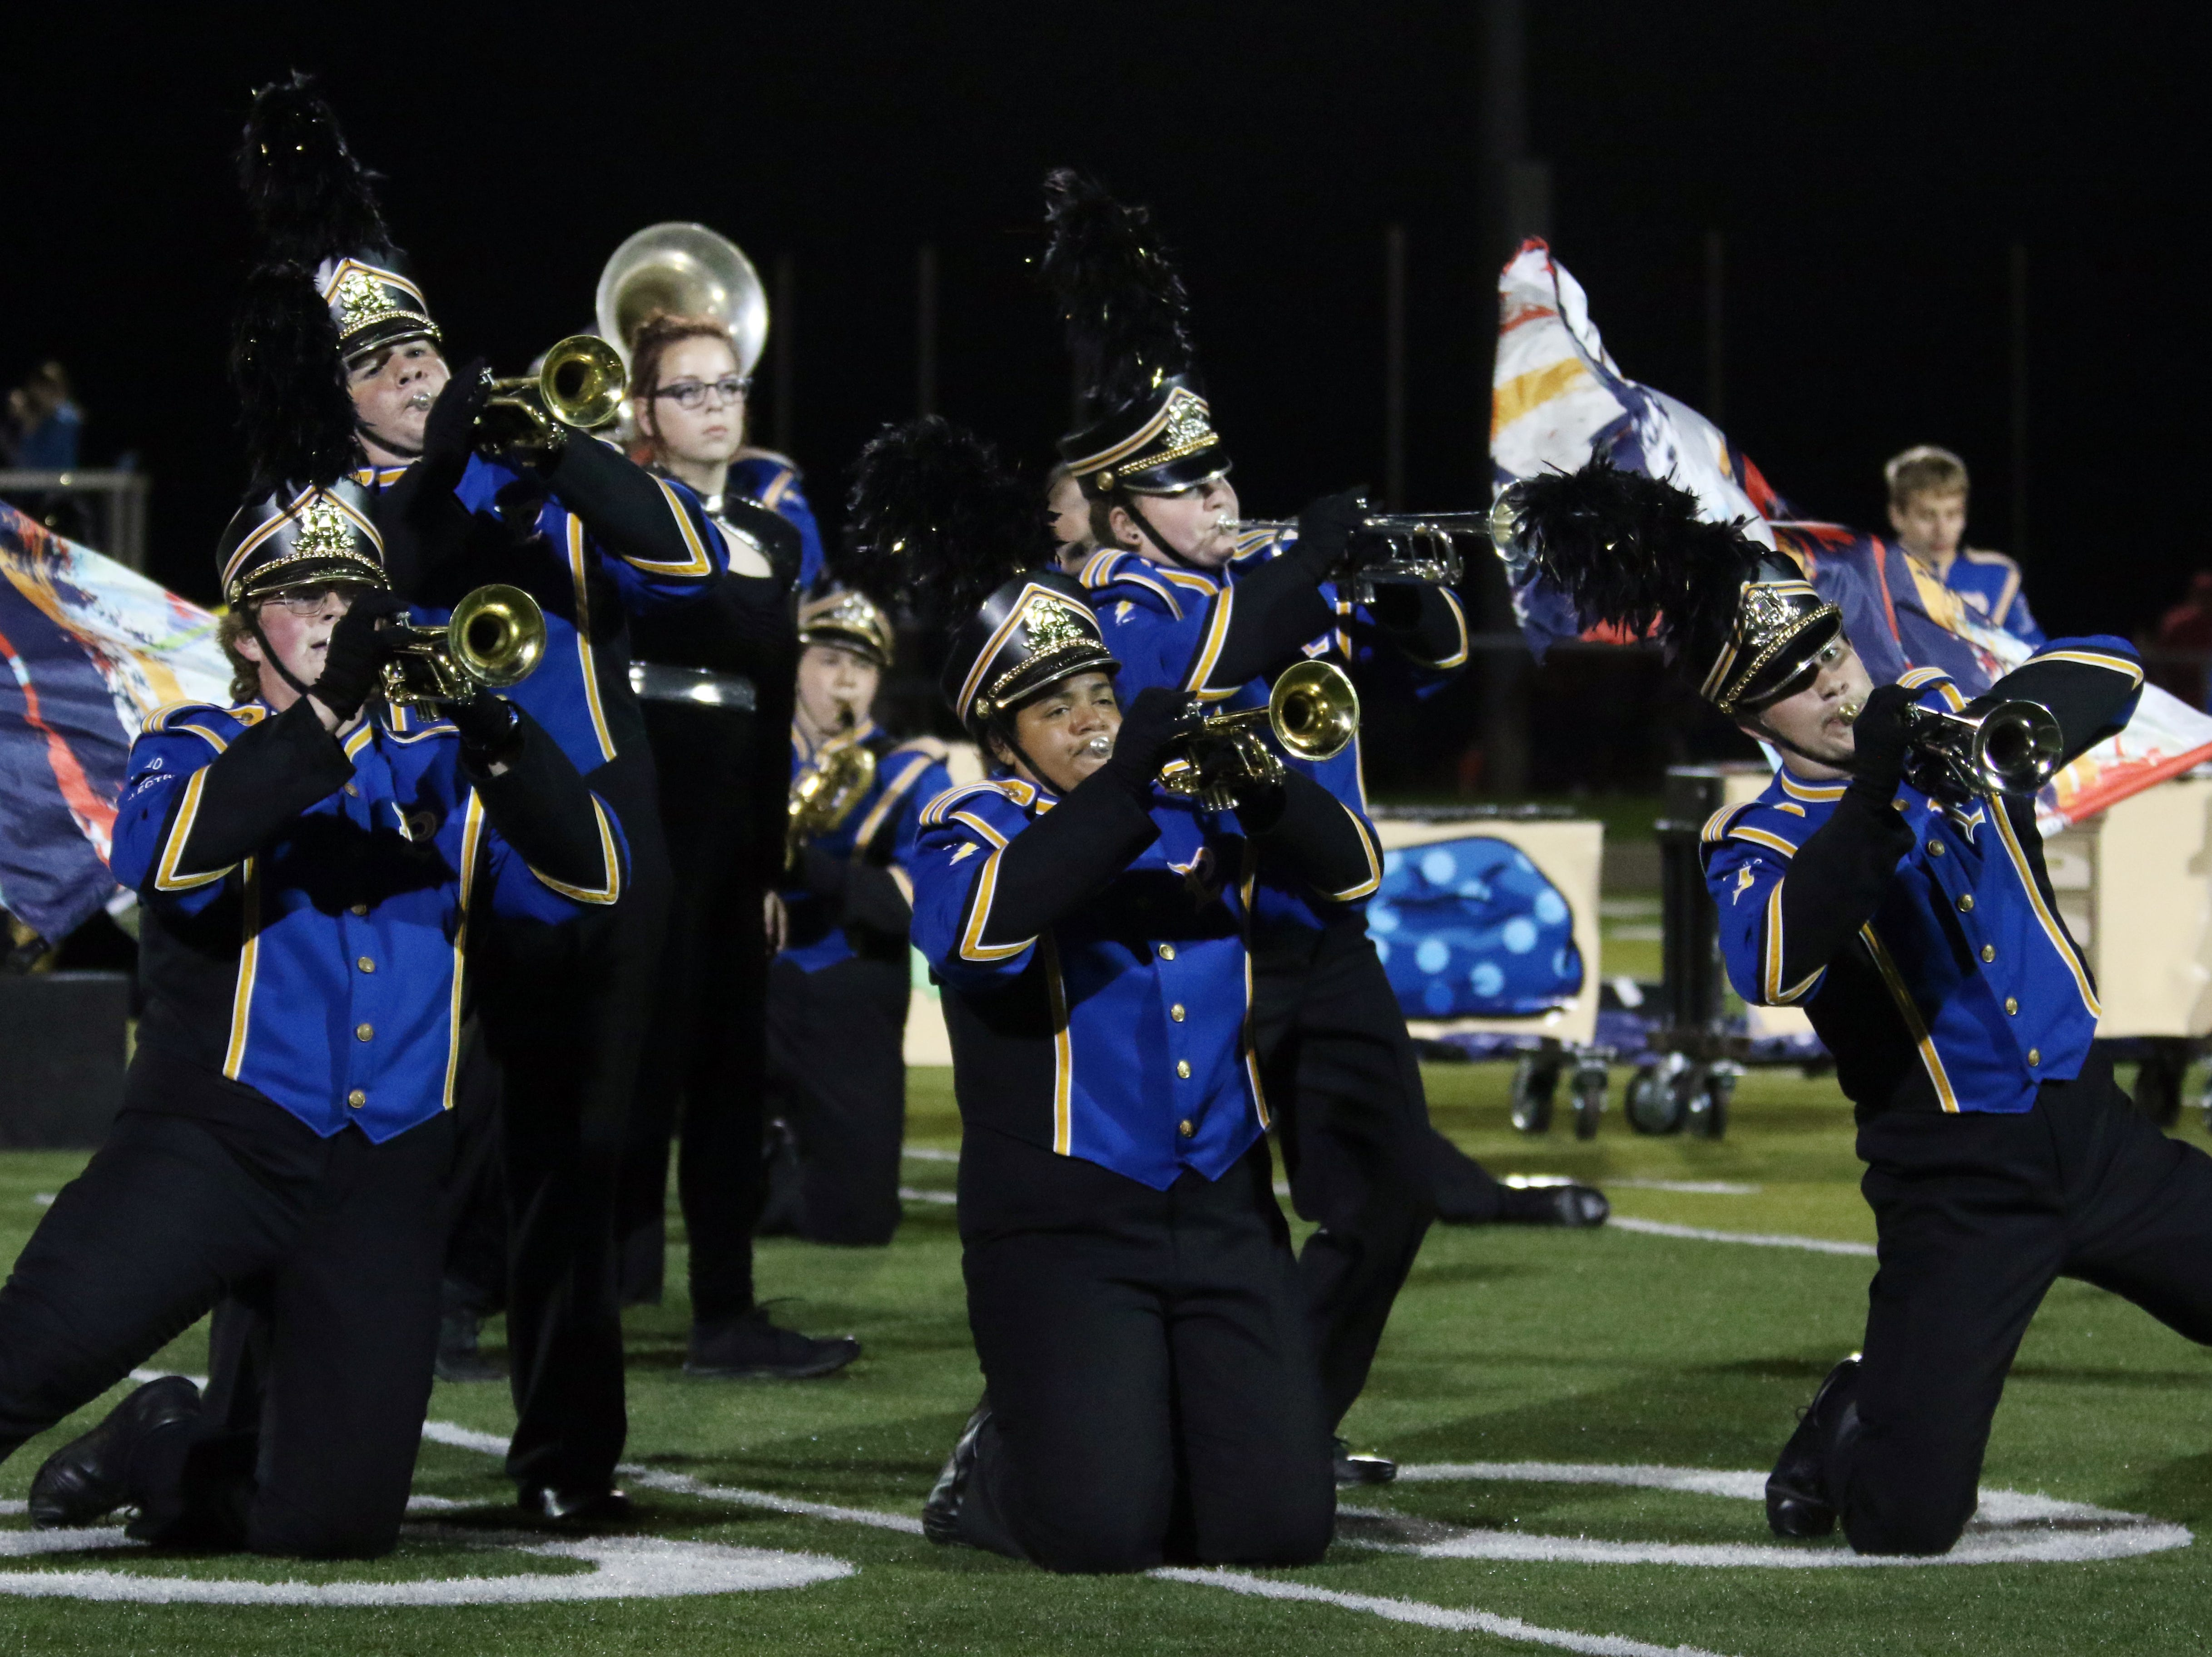 The Philo High School marching band performs during halftime of Friday's game at Sheridan.